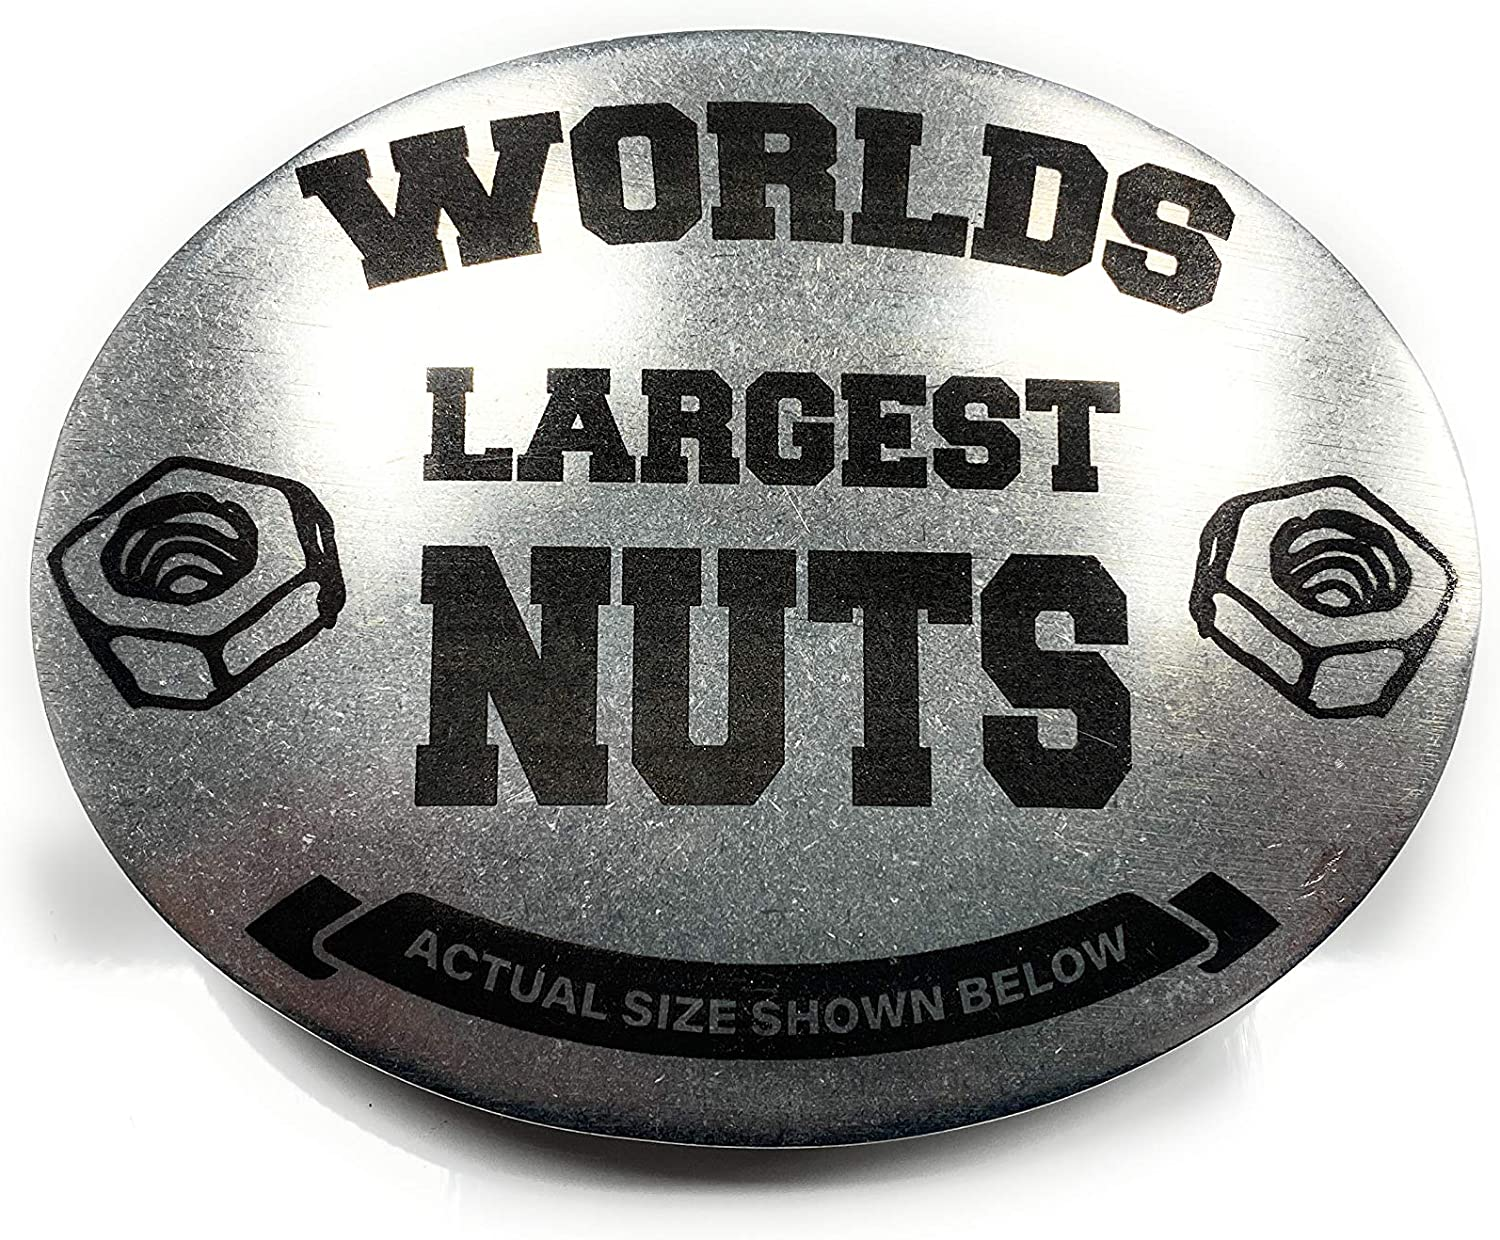 WORLDS LARGEST NUTS Funny designed AUTHENTIC BevBuckle BEER HOLDER BELT BUCKLE. PATENTED. MADE IN THE USA!